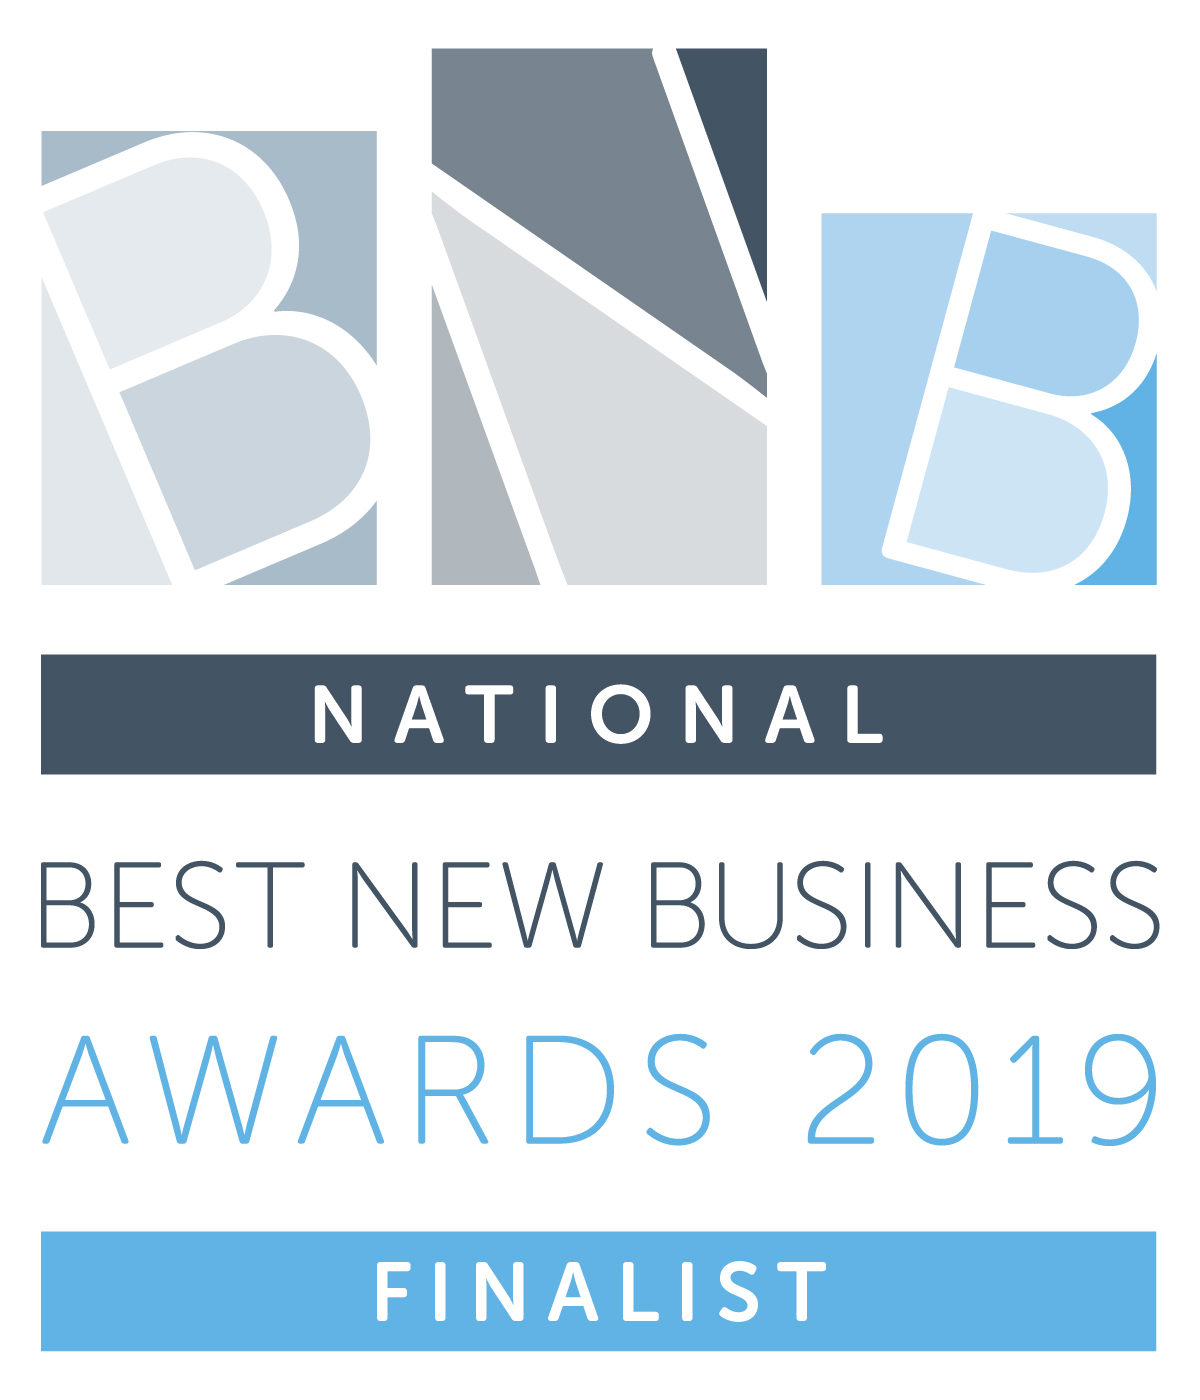 National Best New Business Awards 2019